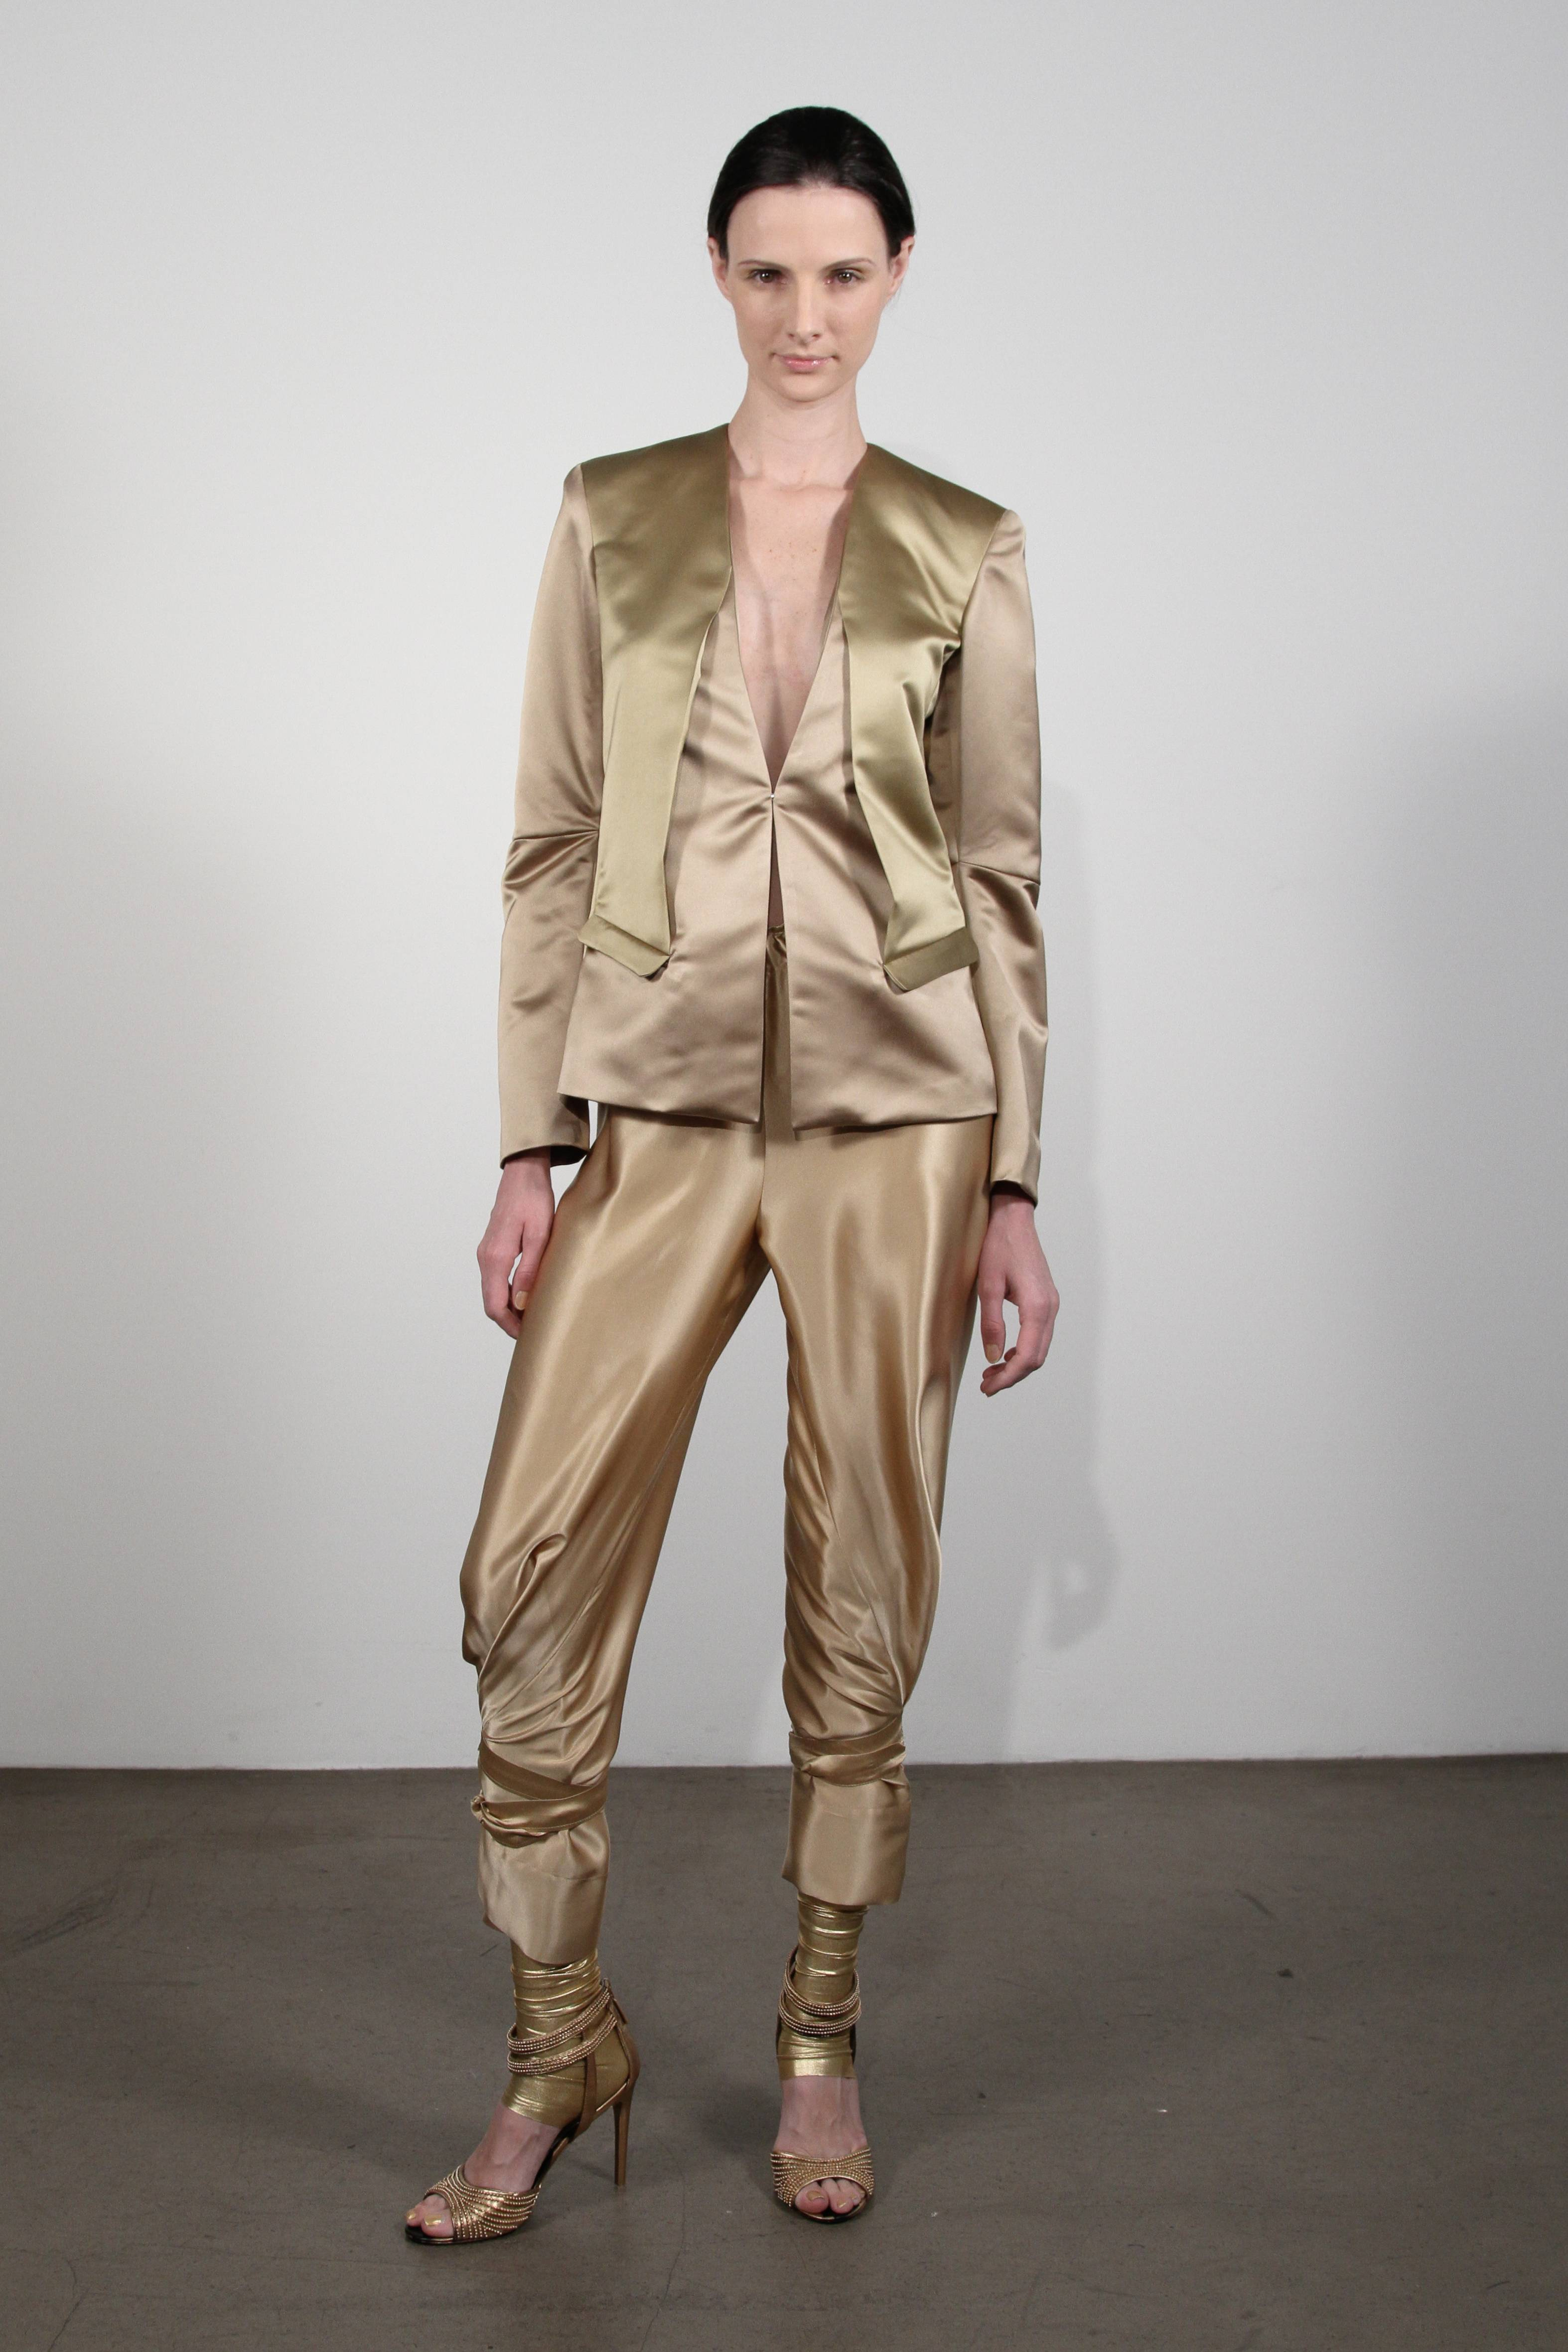 New York Fashion Week: Rubin & Chapelle's Midas Touch